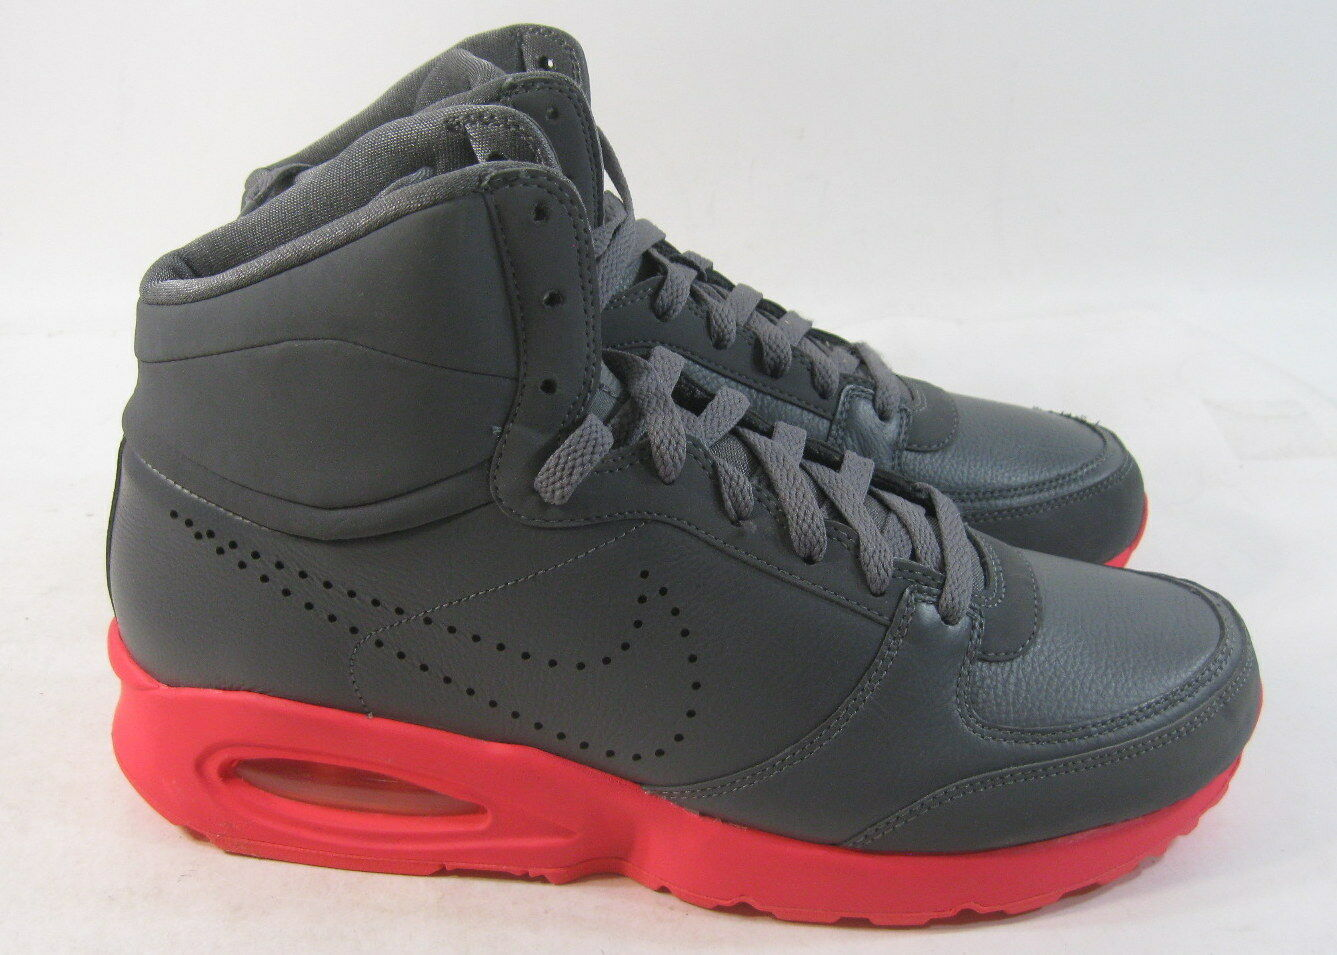 Nike Air Maximas Dark Grey Solar Red Price reduction Deadstock Comfortable Cheap women's shoes women's shoes